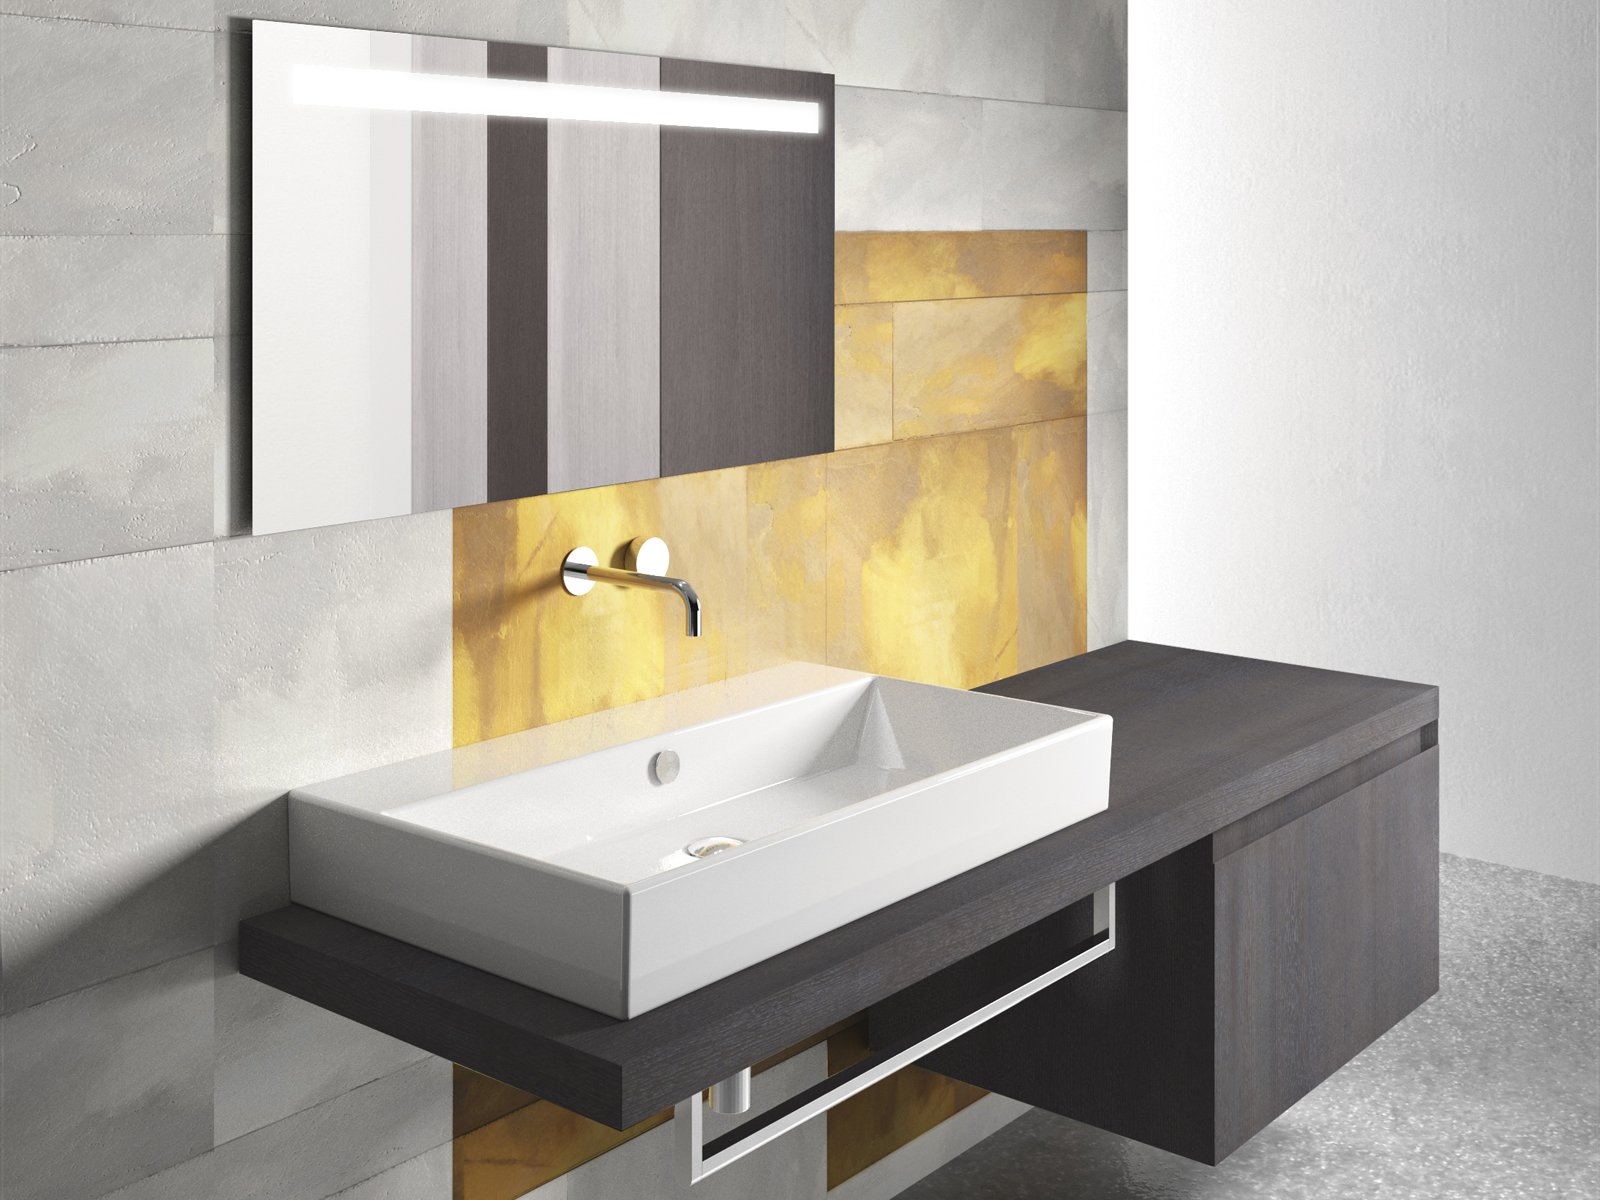 rectangular ceramic washbasin premium by ceramica catalano. Black Bedroom Furniture Sets. Home Design Ideas